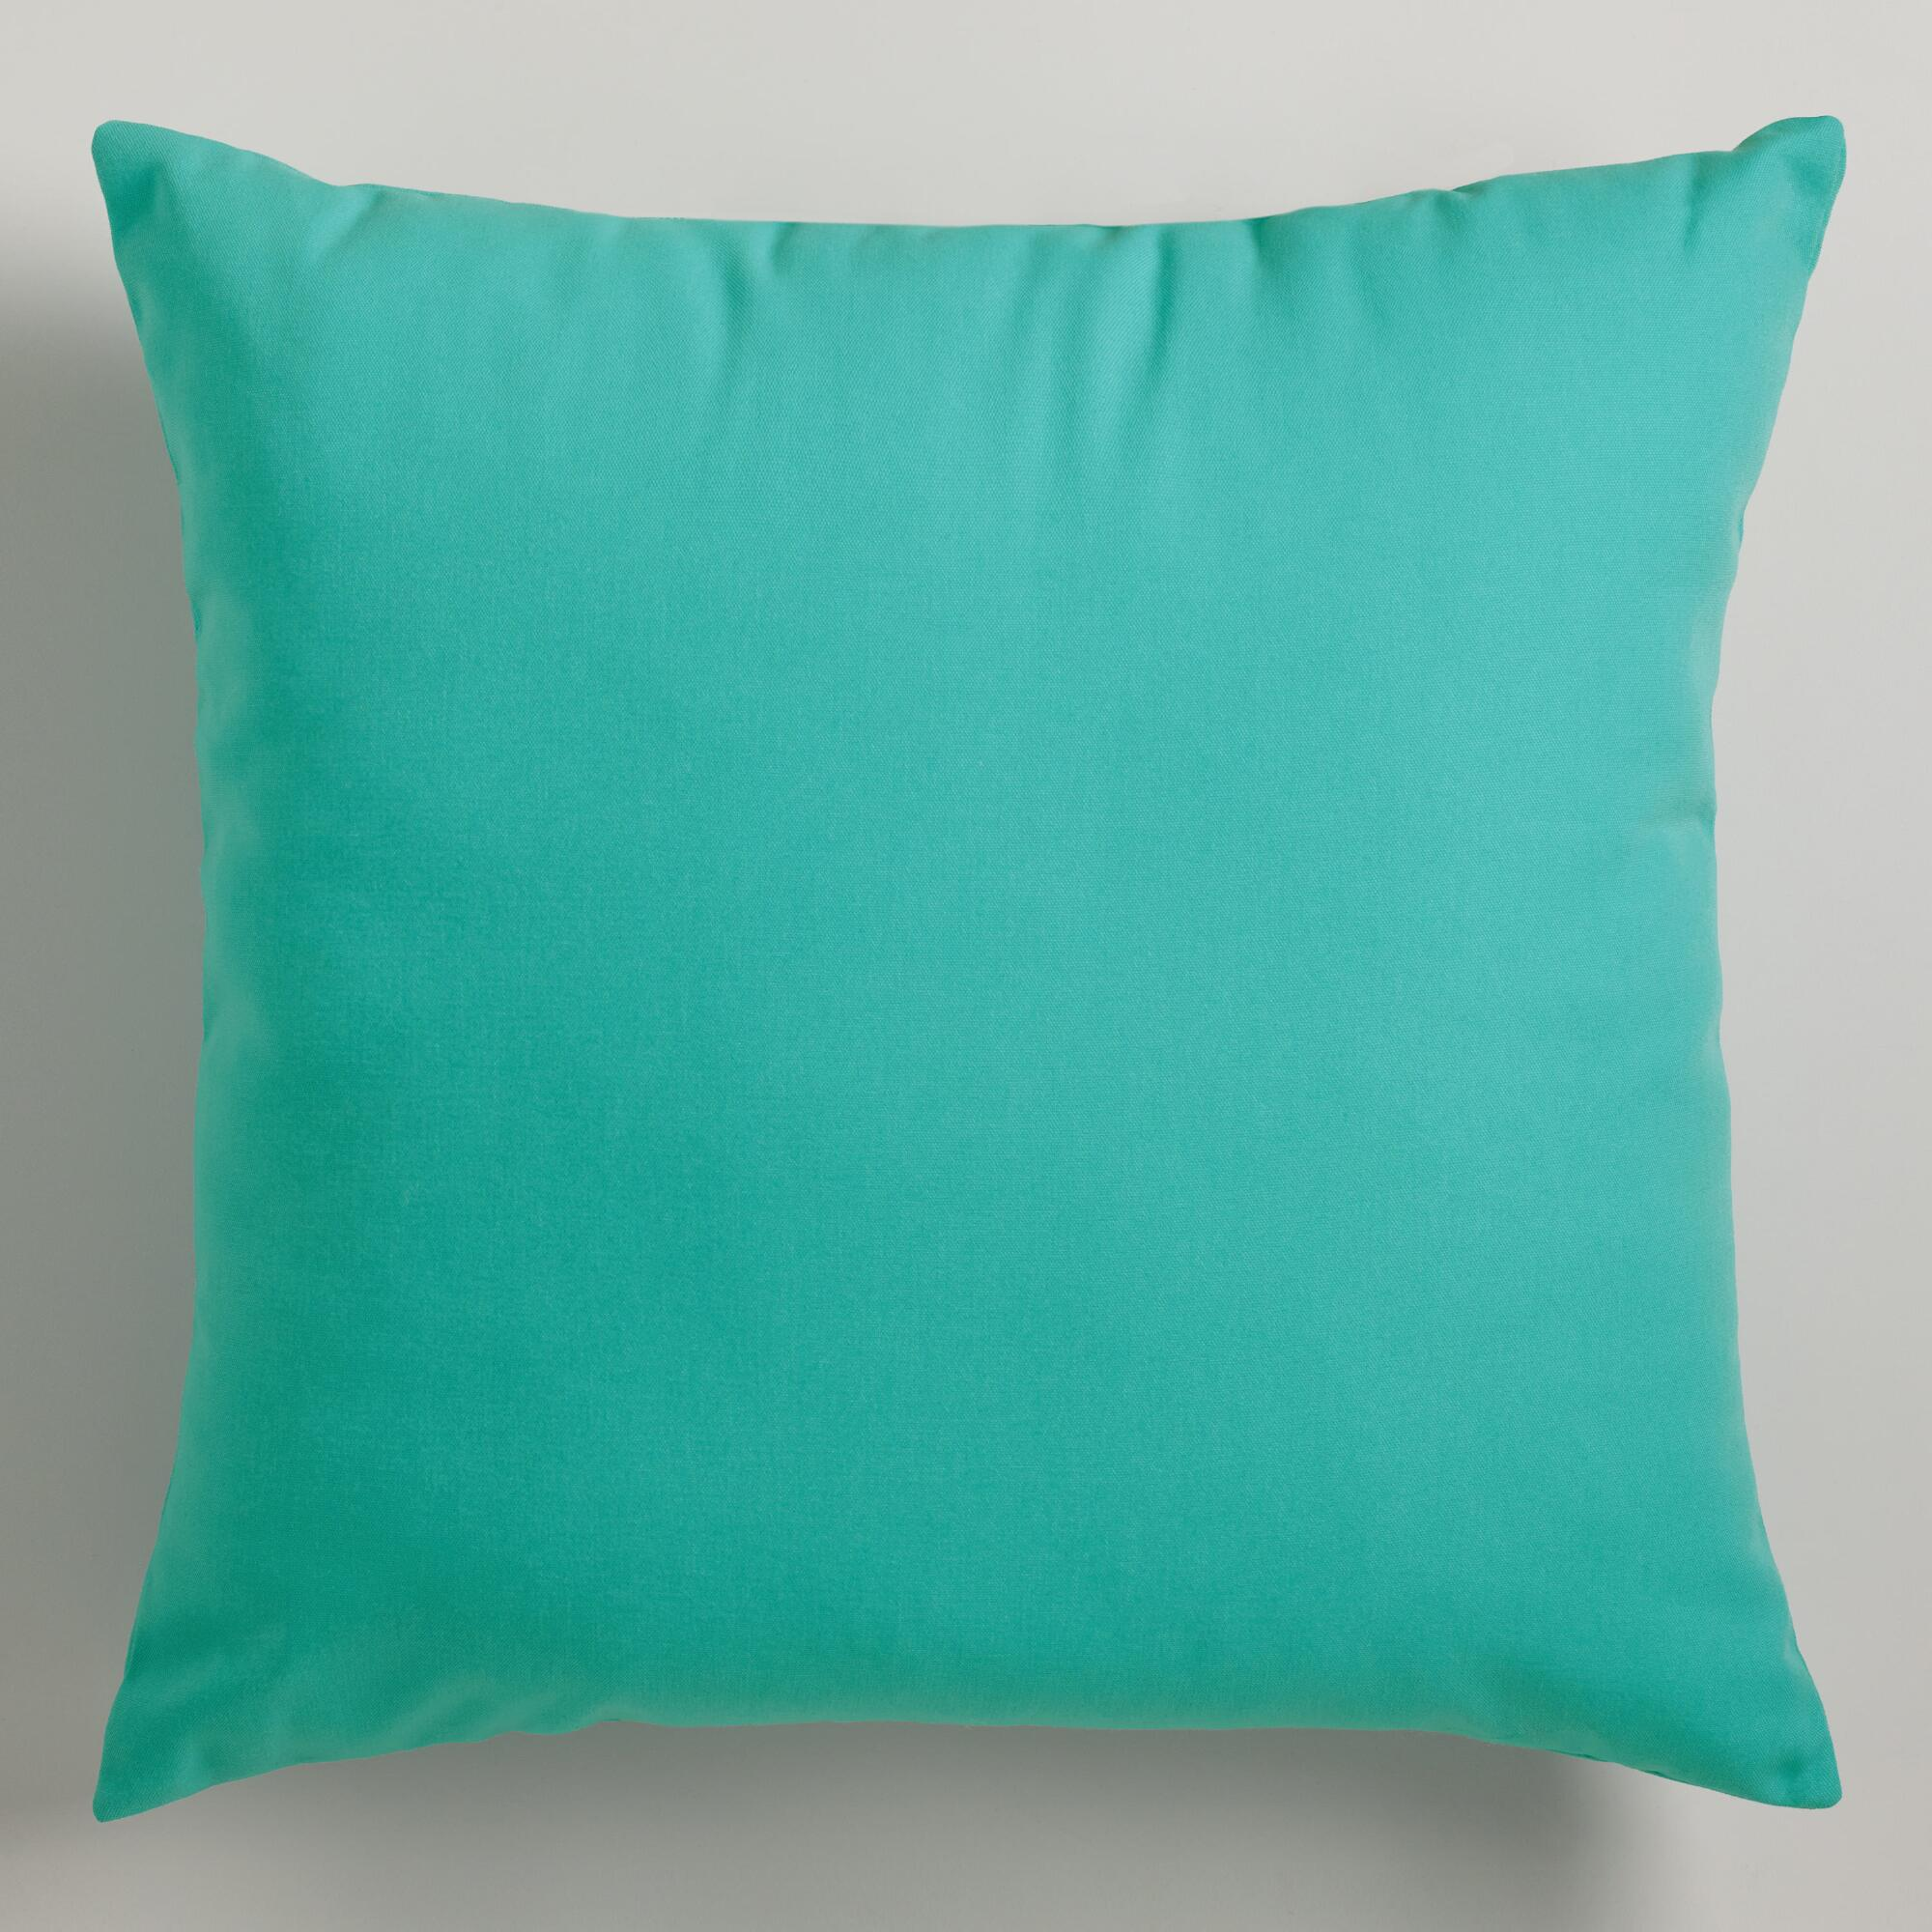 Aqua Outdoor Throw Pillows World Market